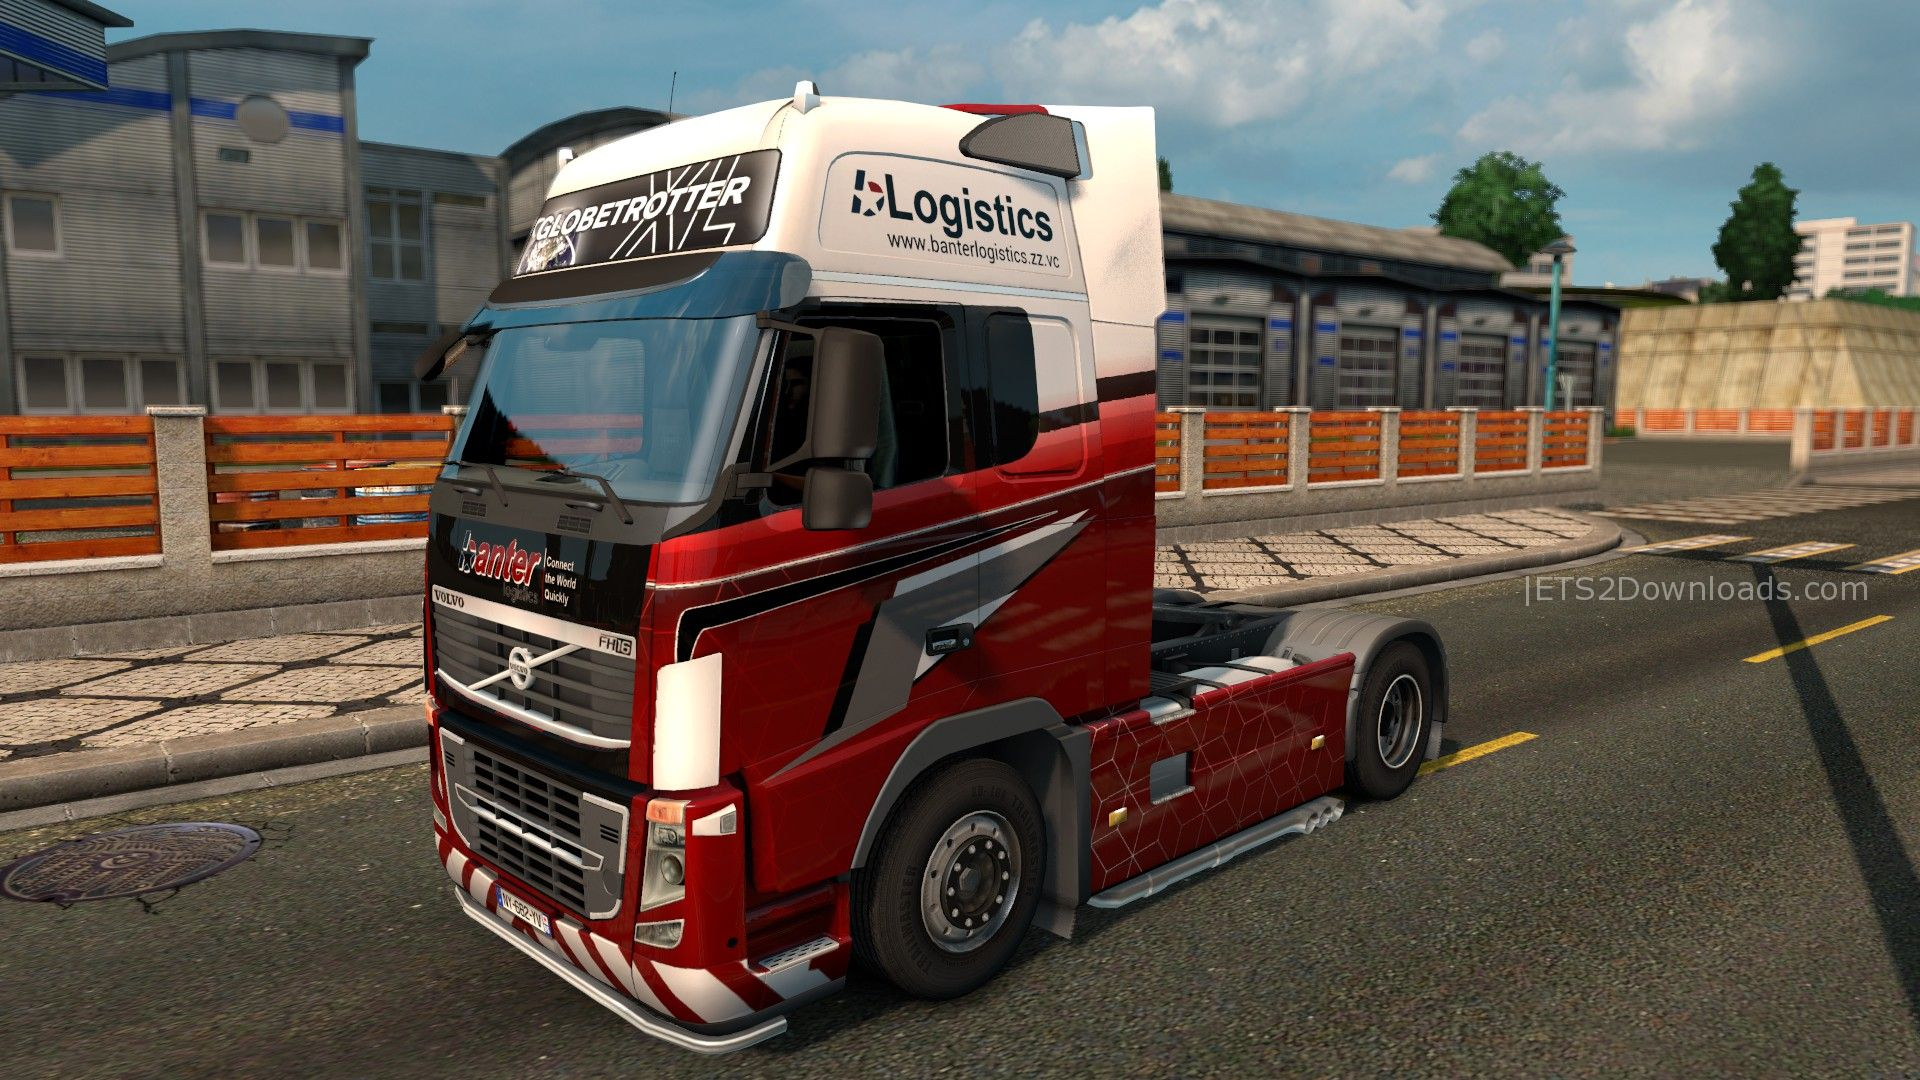 banter-logistics-skin-for-volvo-fh-classic